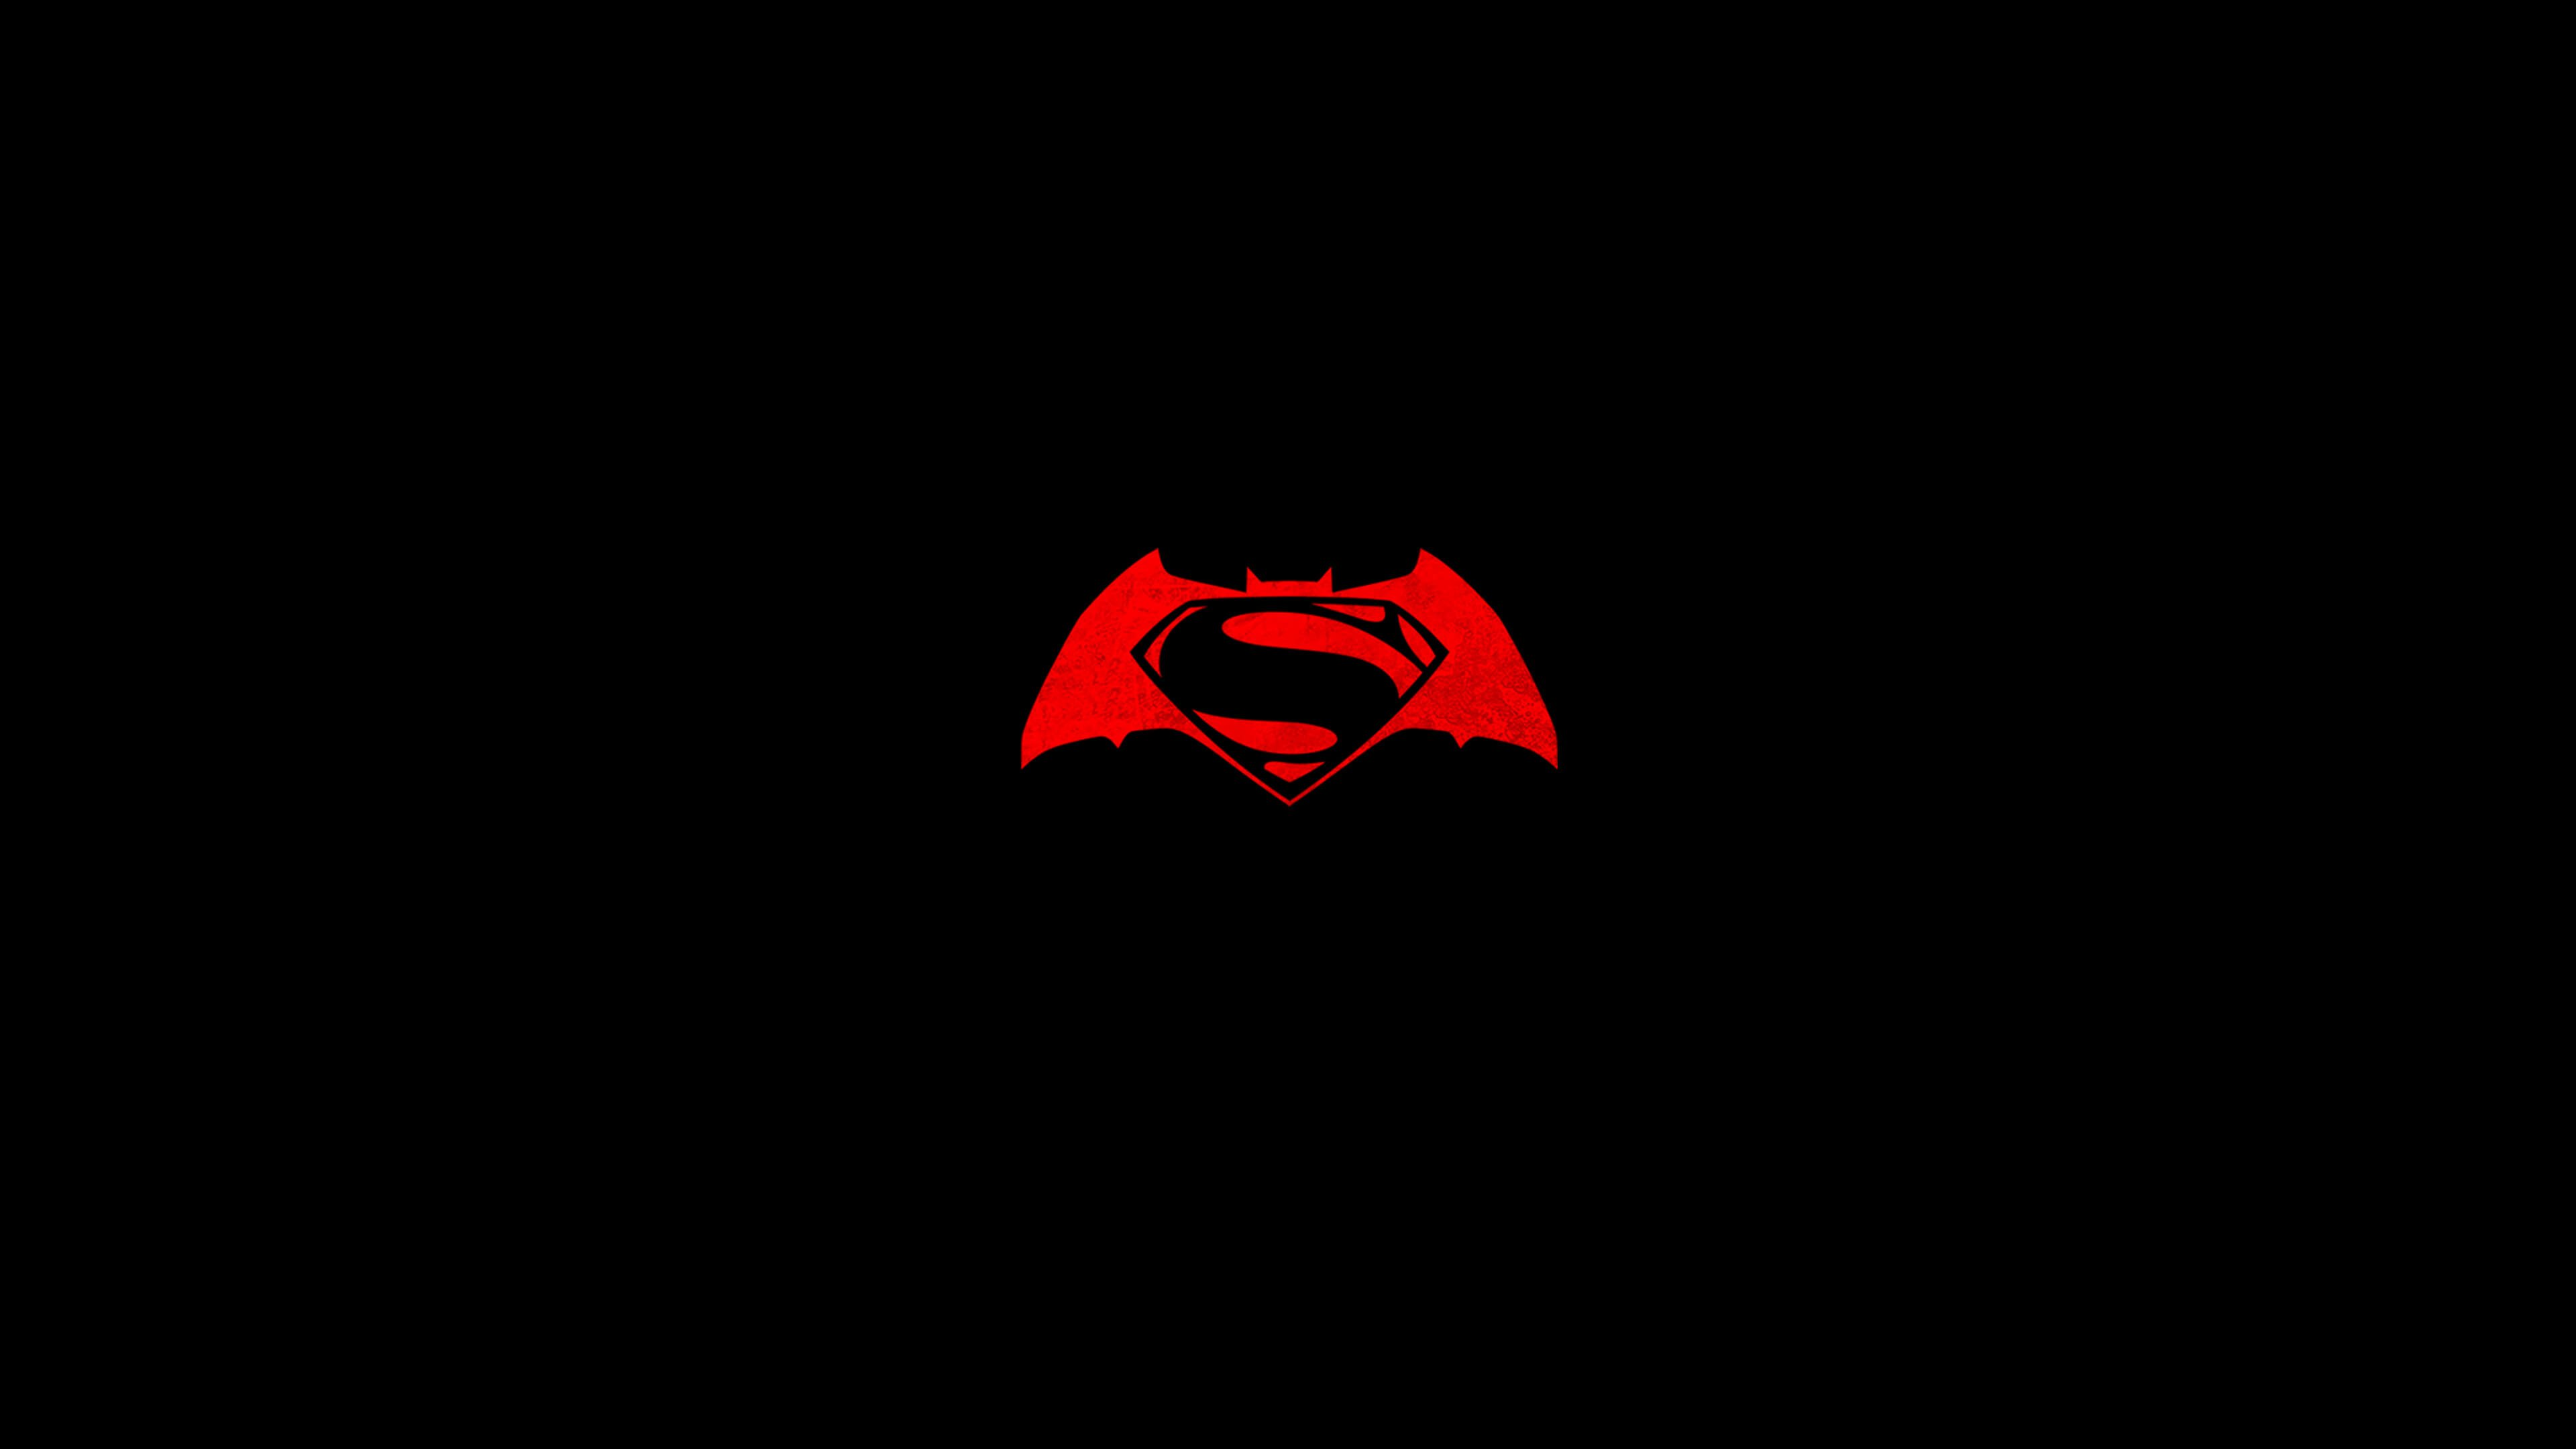 Batman v Superman logo Wallpaper for Desktop 4K 3840x2160